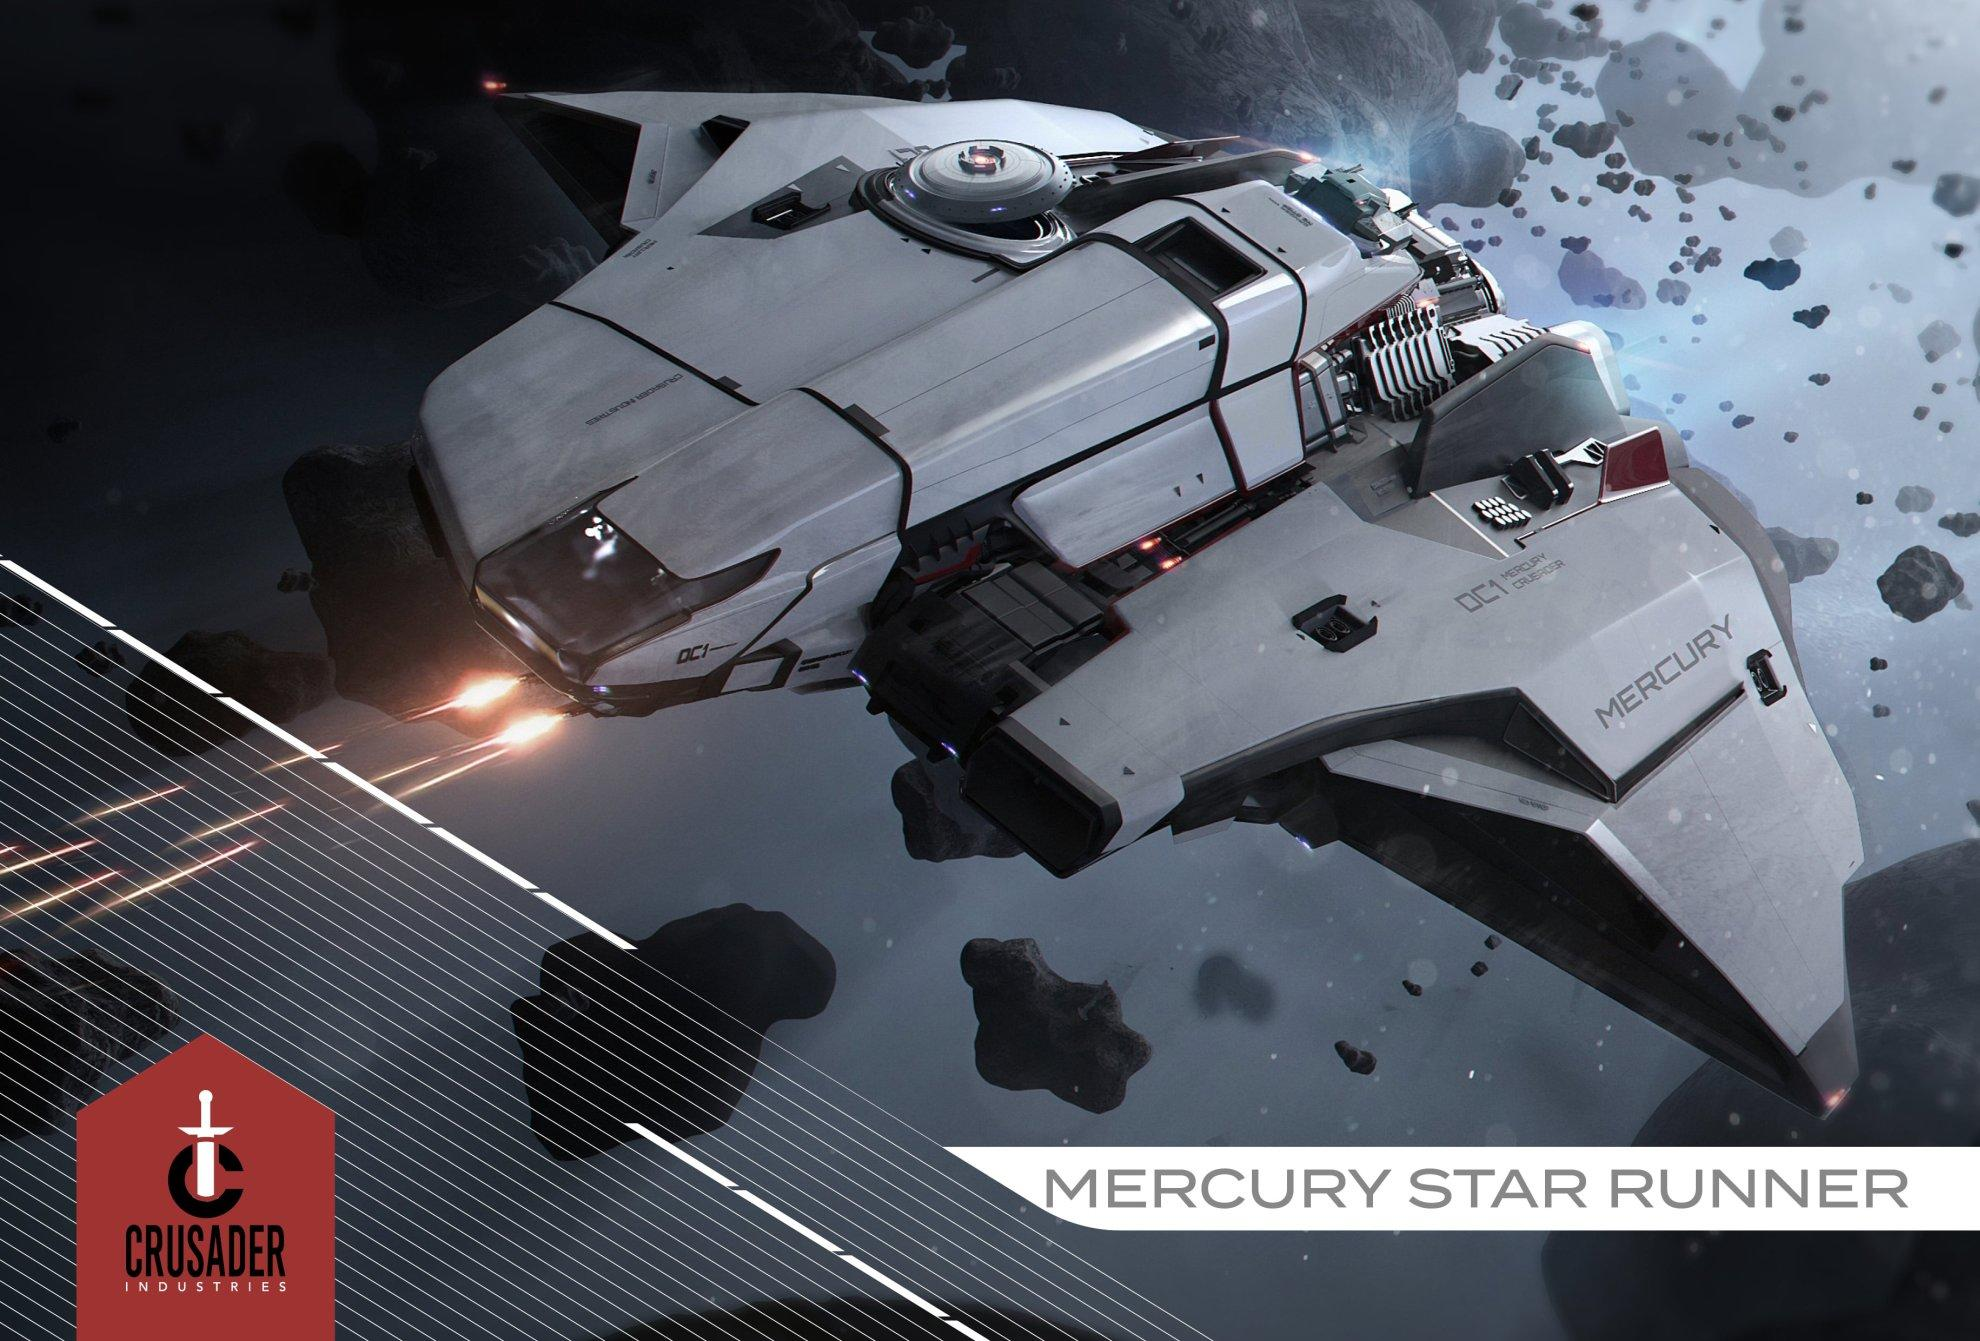 Crusader Mercury Star Runner